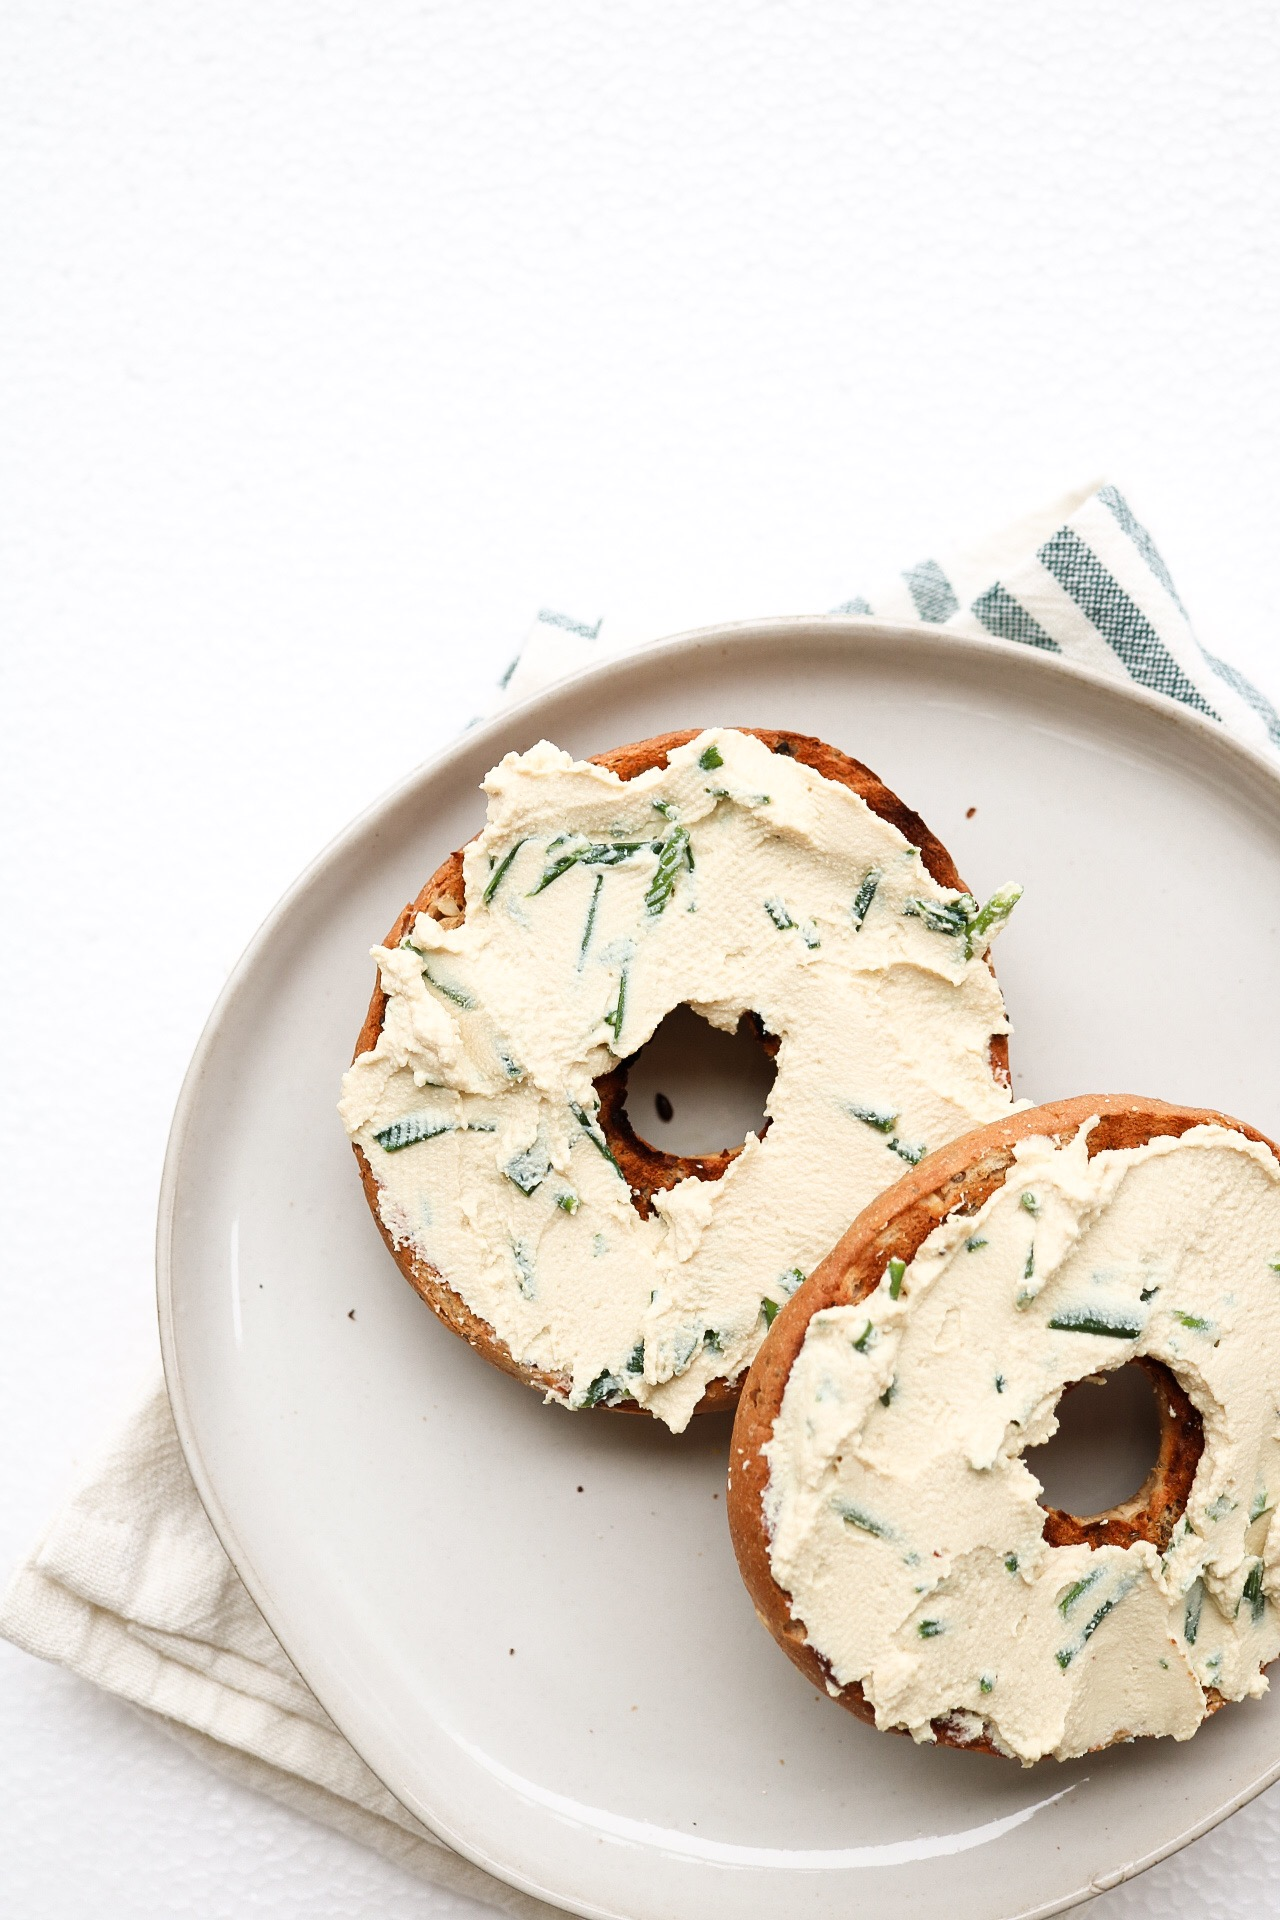 Vegan Chive Cream Cheese - INGREDIENTS:1 block extra firm tofu2 Tbsp apple cider vinegar1/4 cup nutritional yeast1 1/2 tsp salt1/2 cup plant milk1/3 cup chopped chivesDIRECTIONS:In a blender, mix together all of the ingredients, except for the chives. Once your cheese mixture is blended, pour it into a Tupperware container, and fold in your chives. Cover the mixture with a lid, and put into the fridge to firm up over-night. Allowing it to sit in the fridge lets the flavors absorb, as well as create the creamy and firm texture of a classic cream cheese.